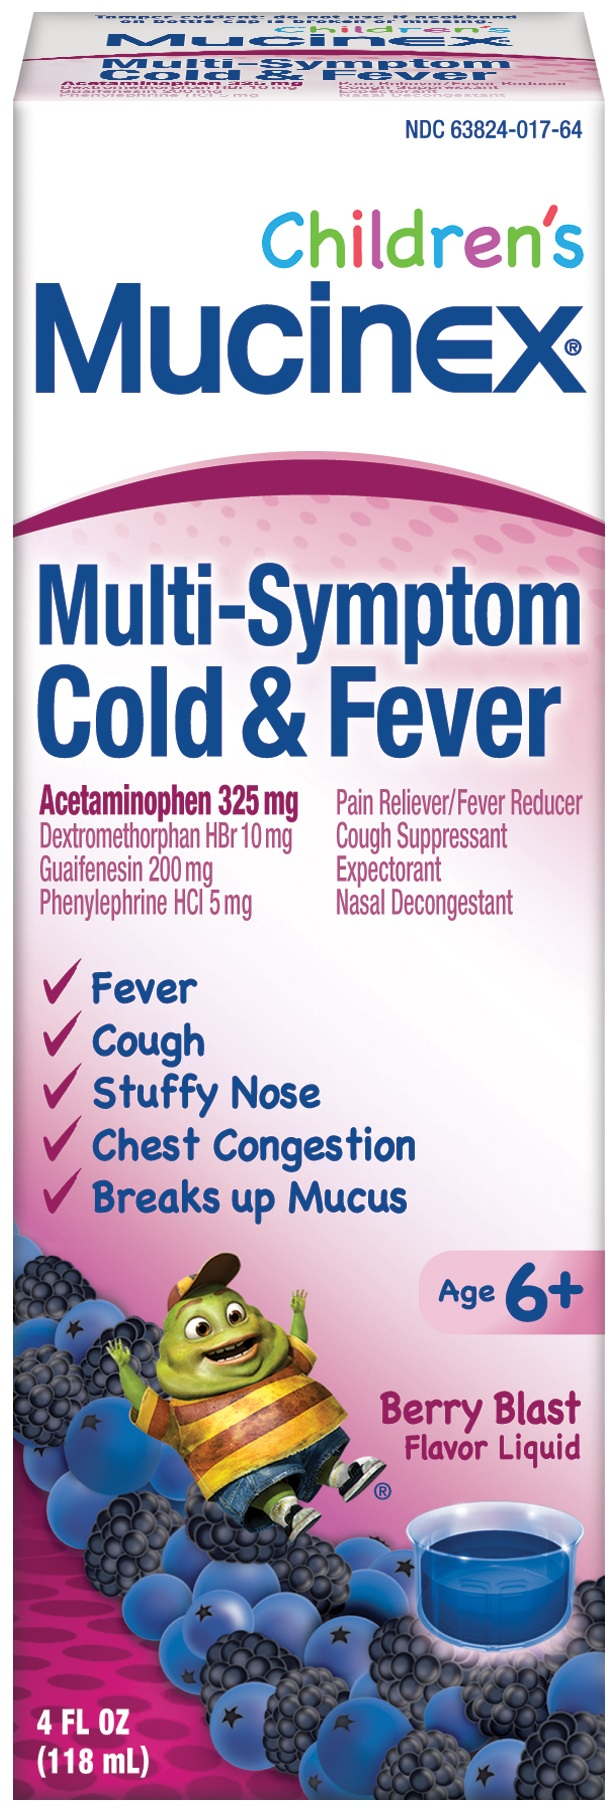 MUCINEX Childrens MultiSymptom Cough Cold  Fever  Very Berry Photo